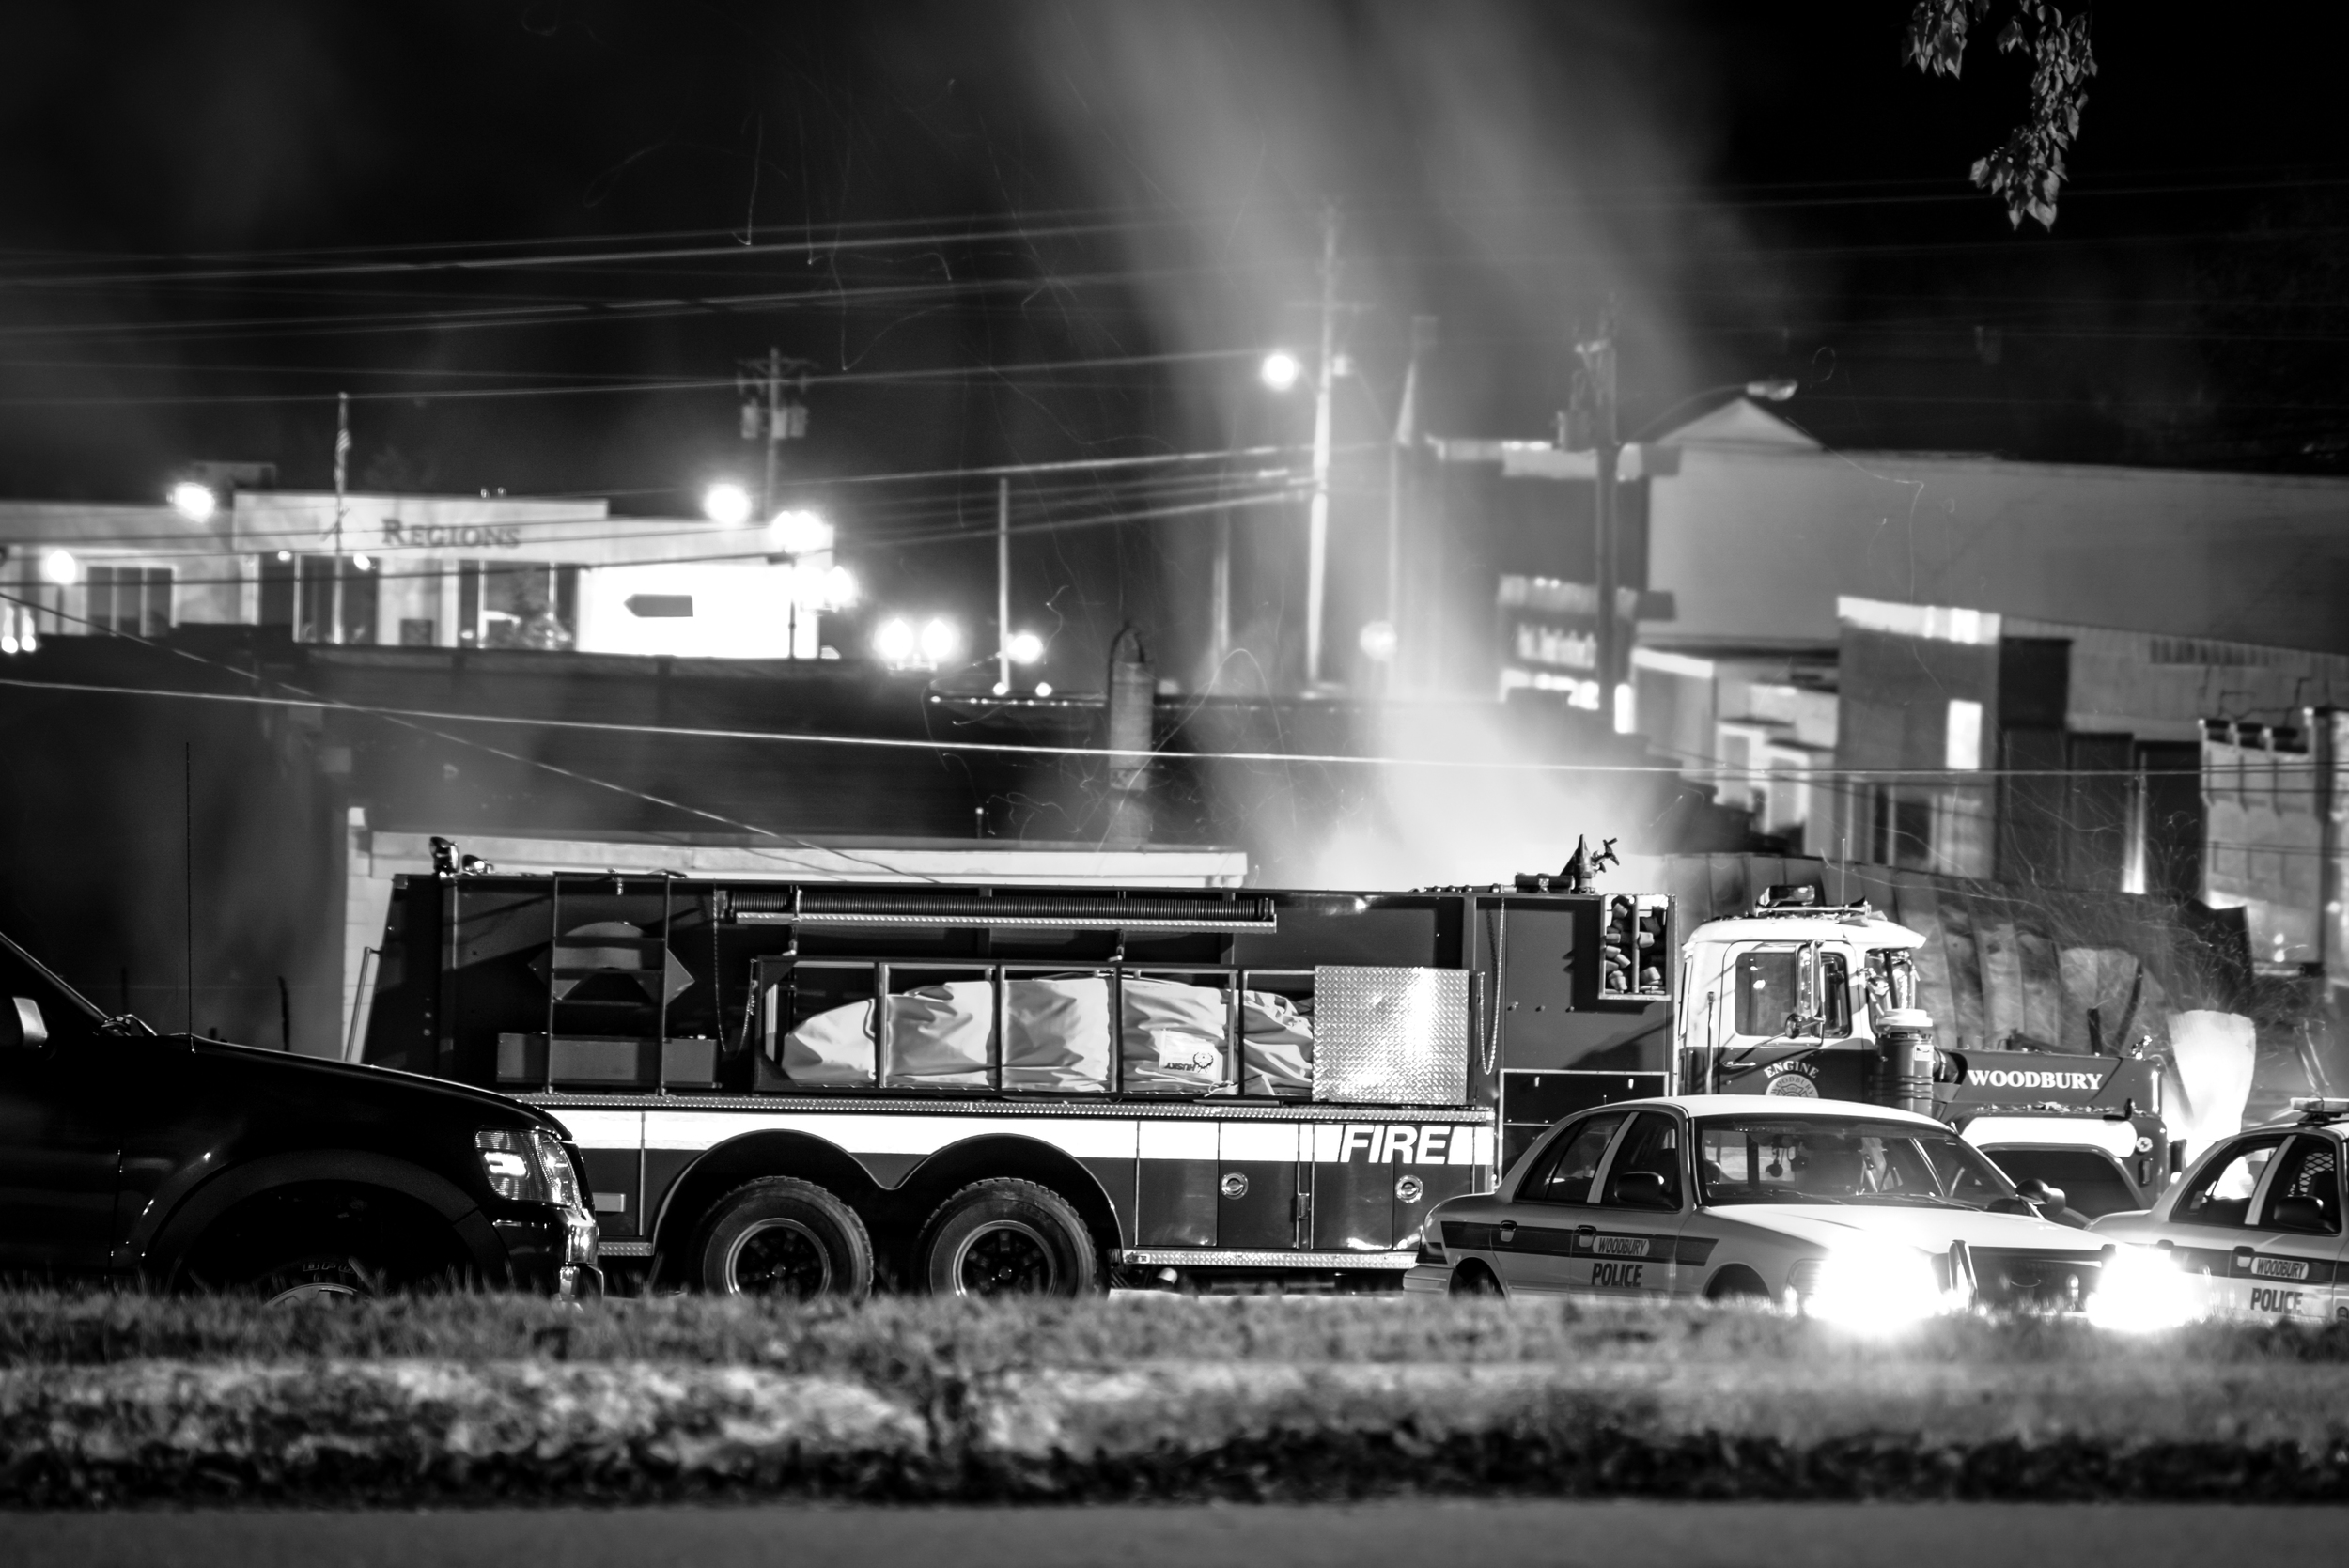 Woodbury Fire 4 (1 of 1).jpg